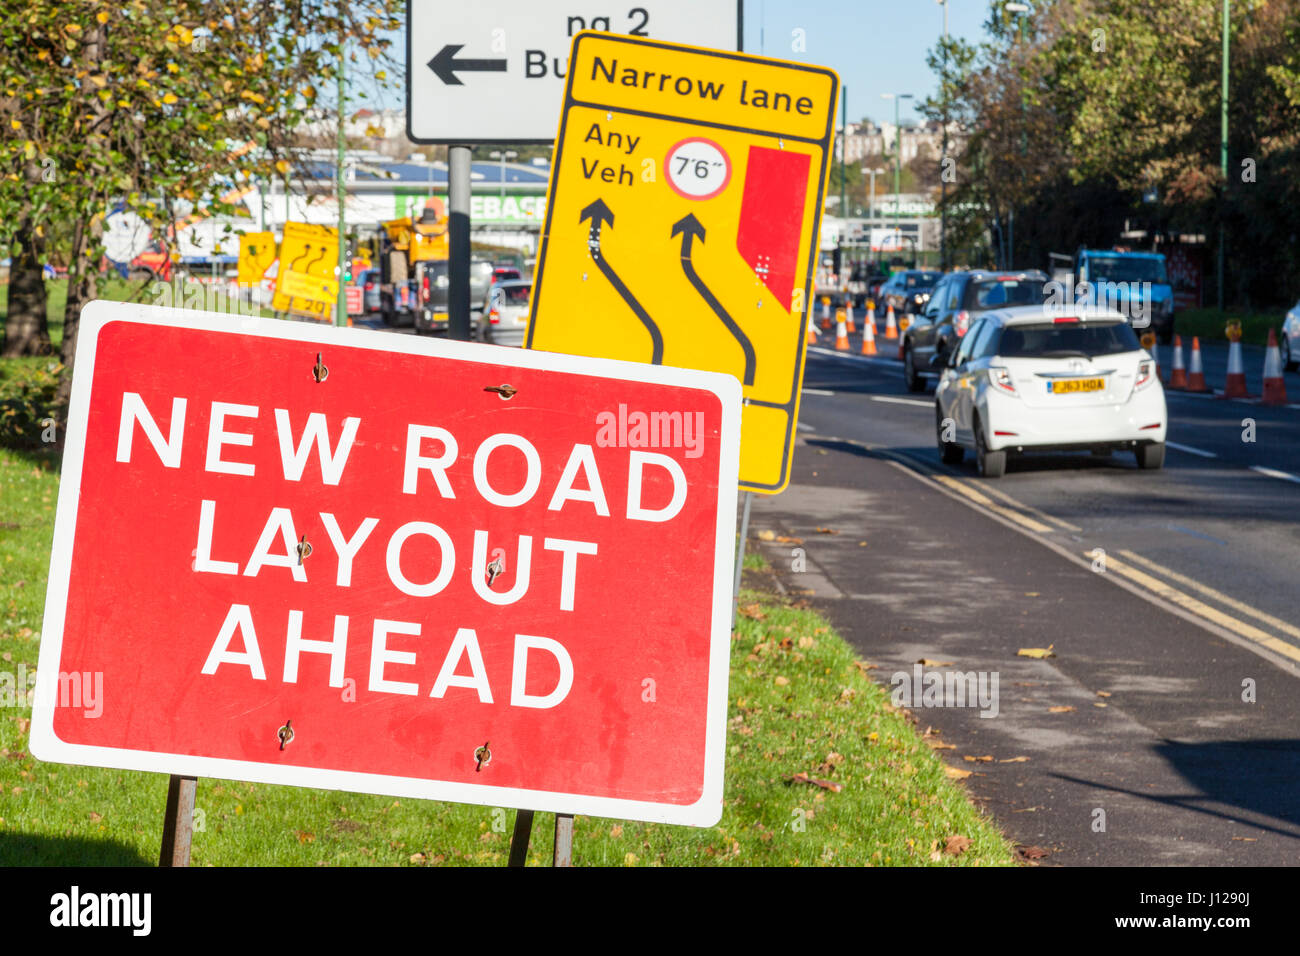 New road layout ahead sign and other road works signs in Nottingham, England, UK - Stock Image